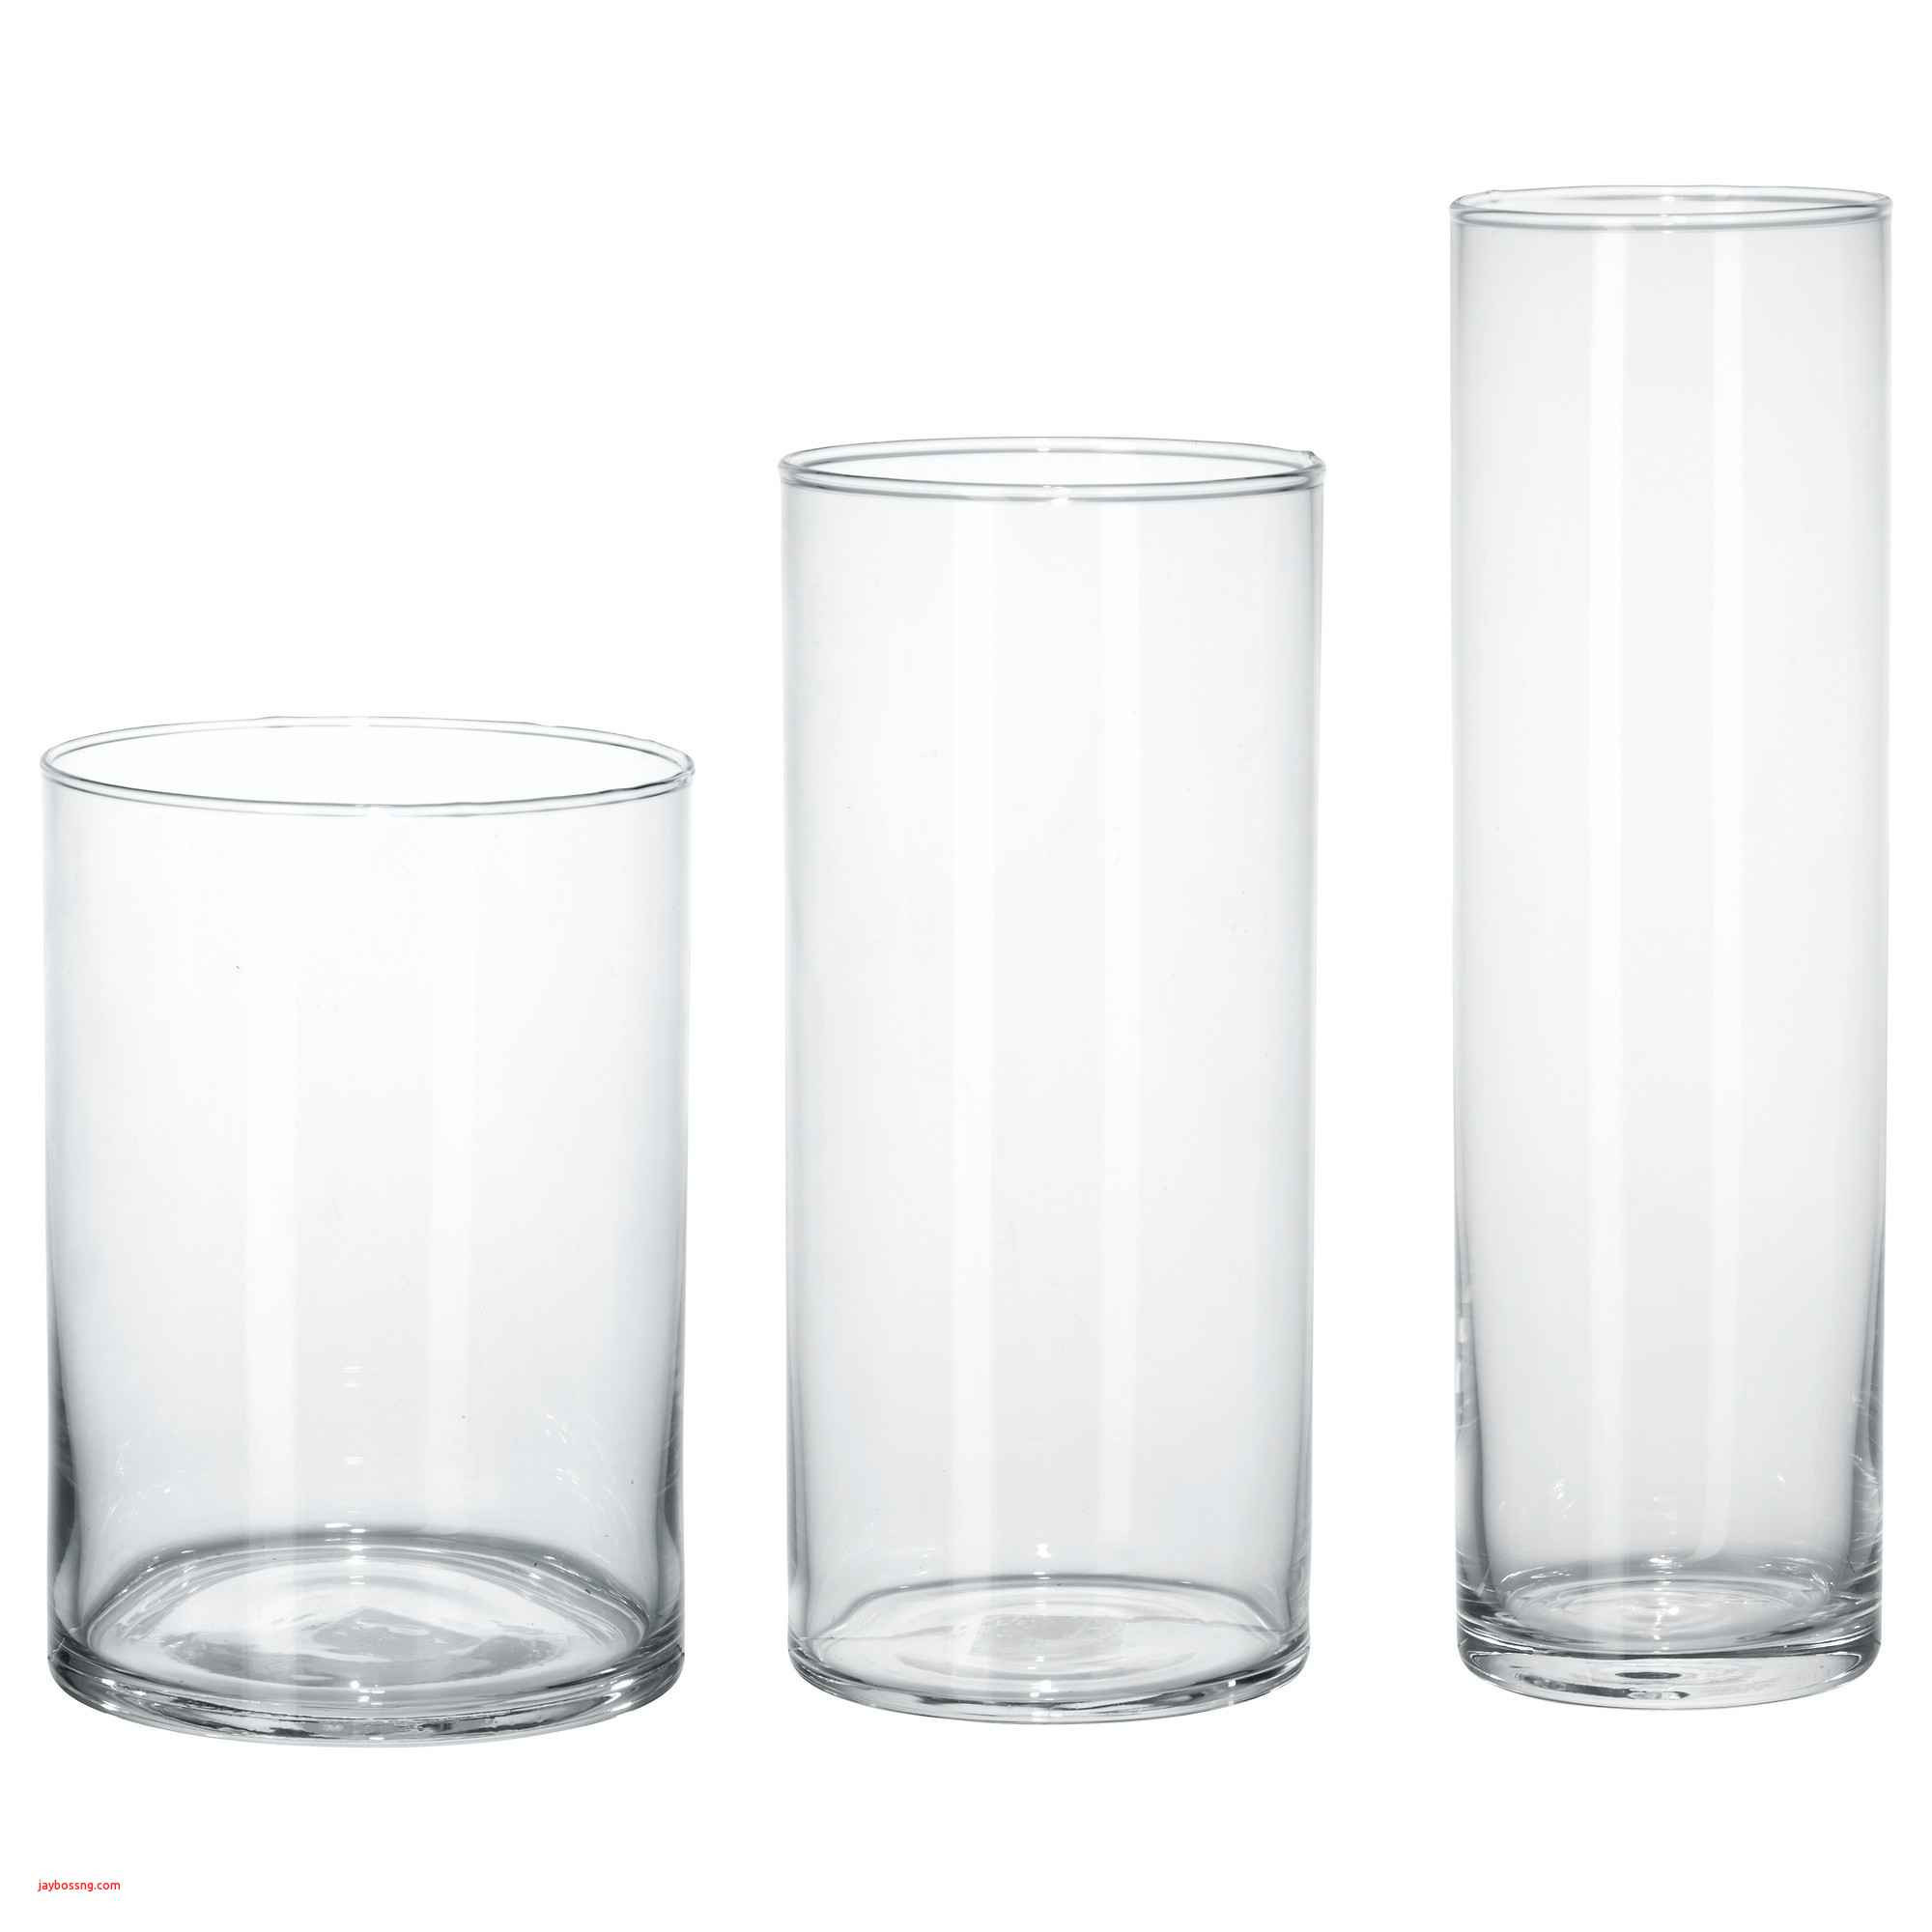 Small Vase Filler Beads Of White Vase Filler Photos Ikea White Table Created Pe S5h Vases Ikea Pertaining to White Vase Filler Photos Ikea White Table Created Pe S5h Vases Ikea Vase I 0d Bladet